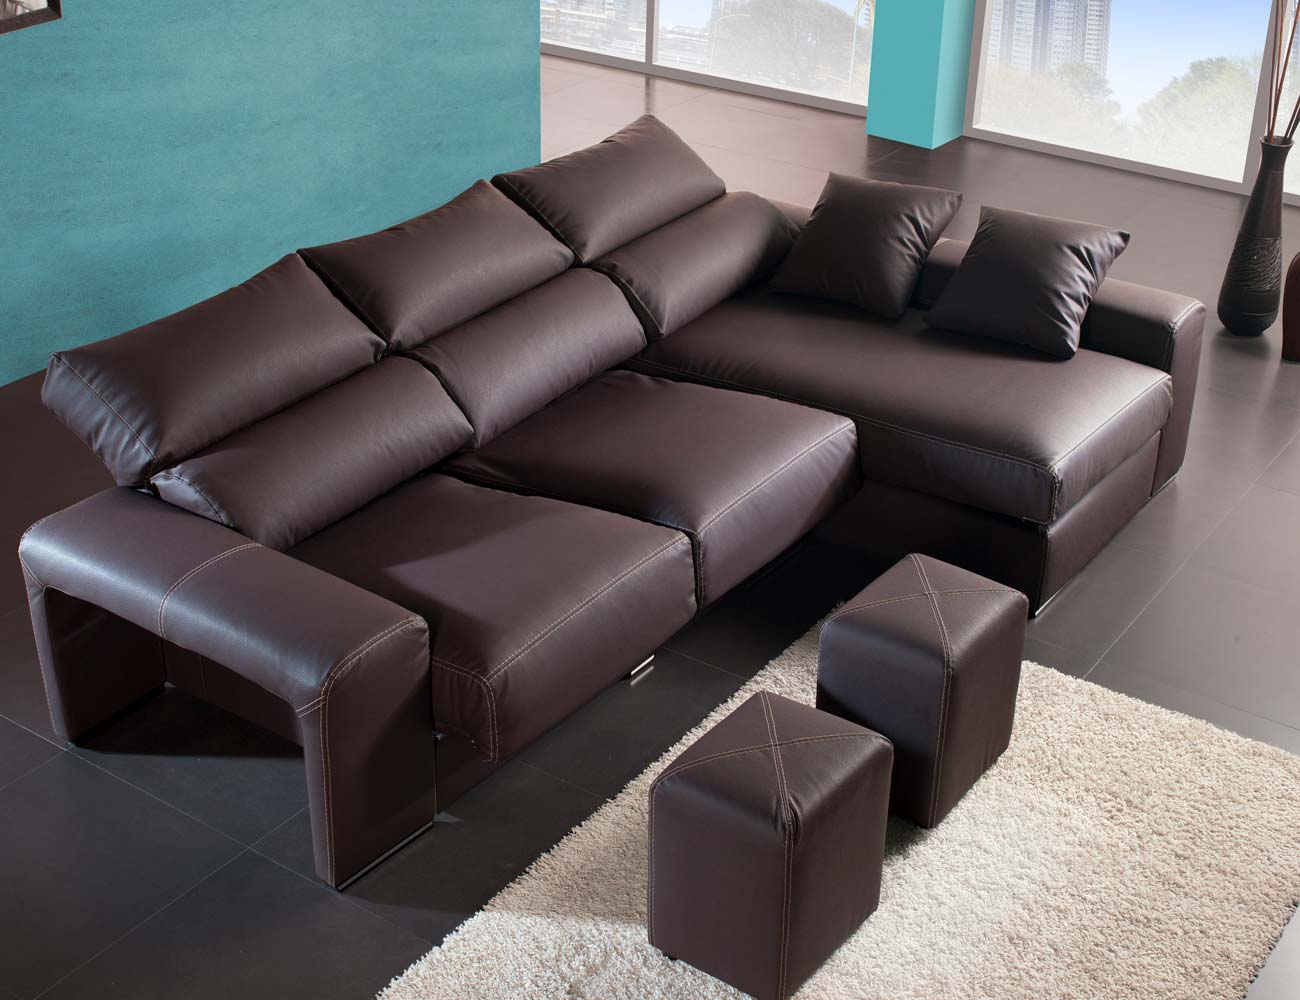 Sofa chaiselongue moderno polipiel chocolate poufs taburetes23